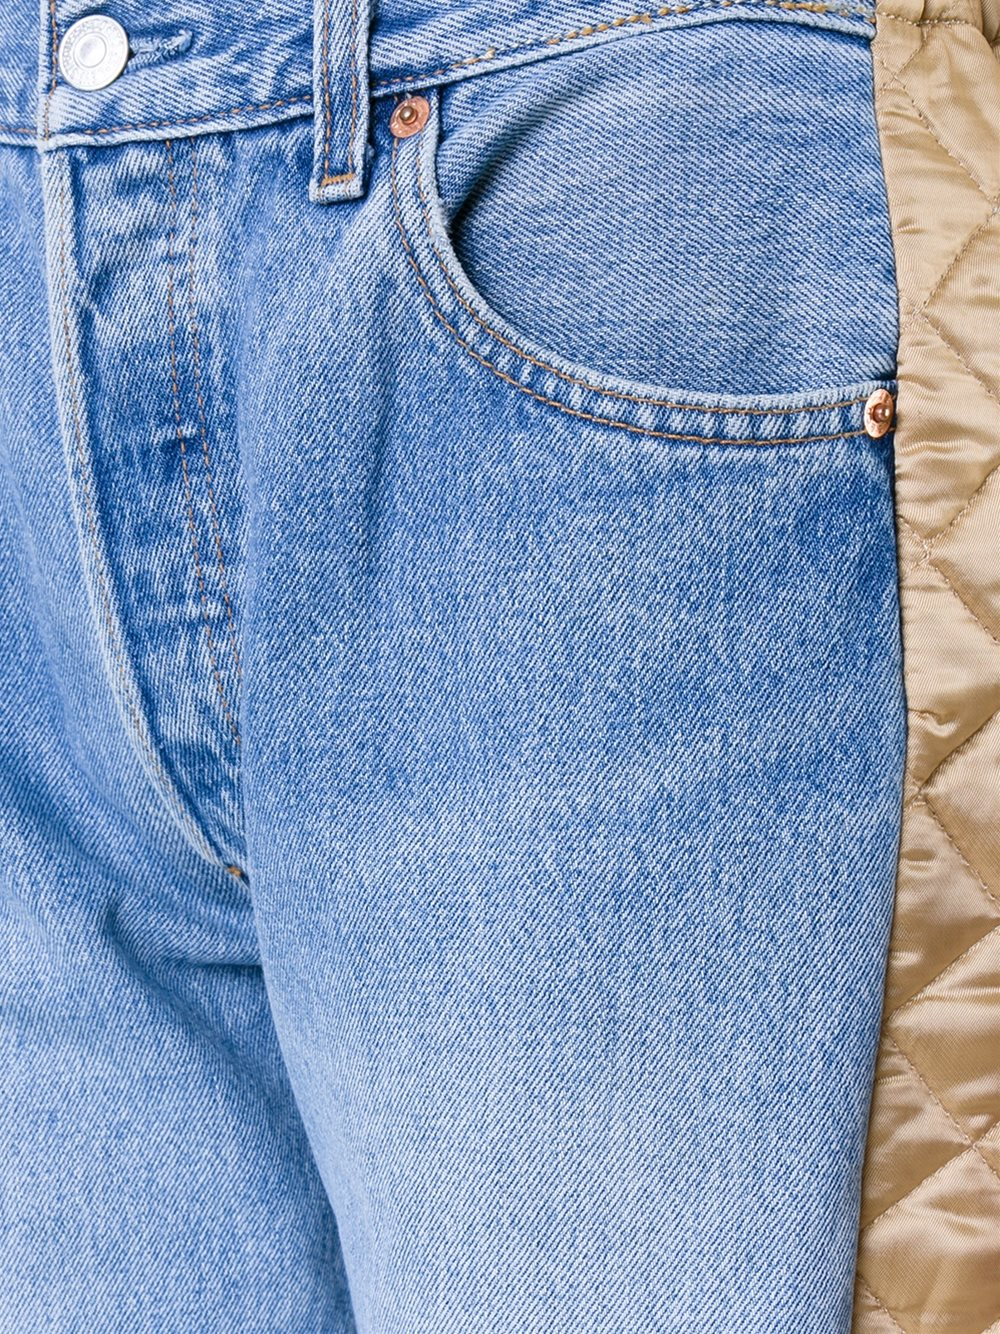 Bless Denim Quilted Panel Jeans in Blue